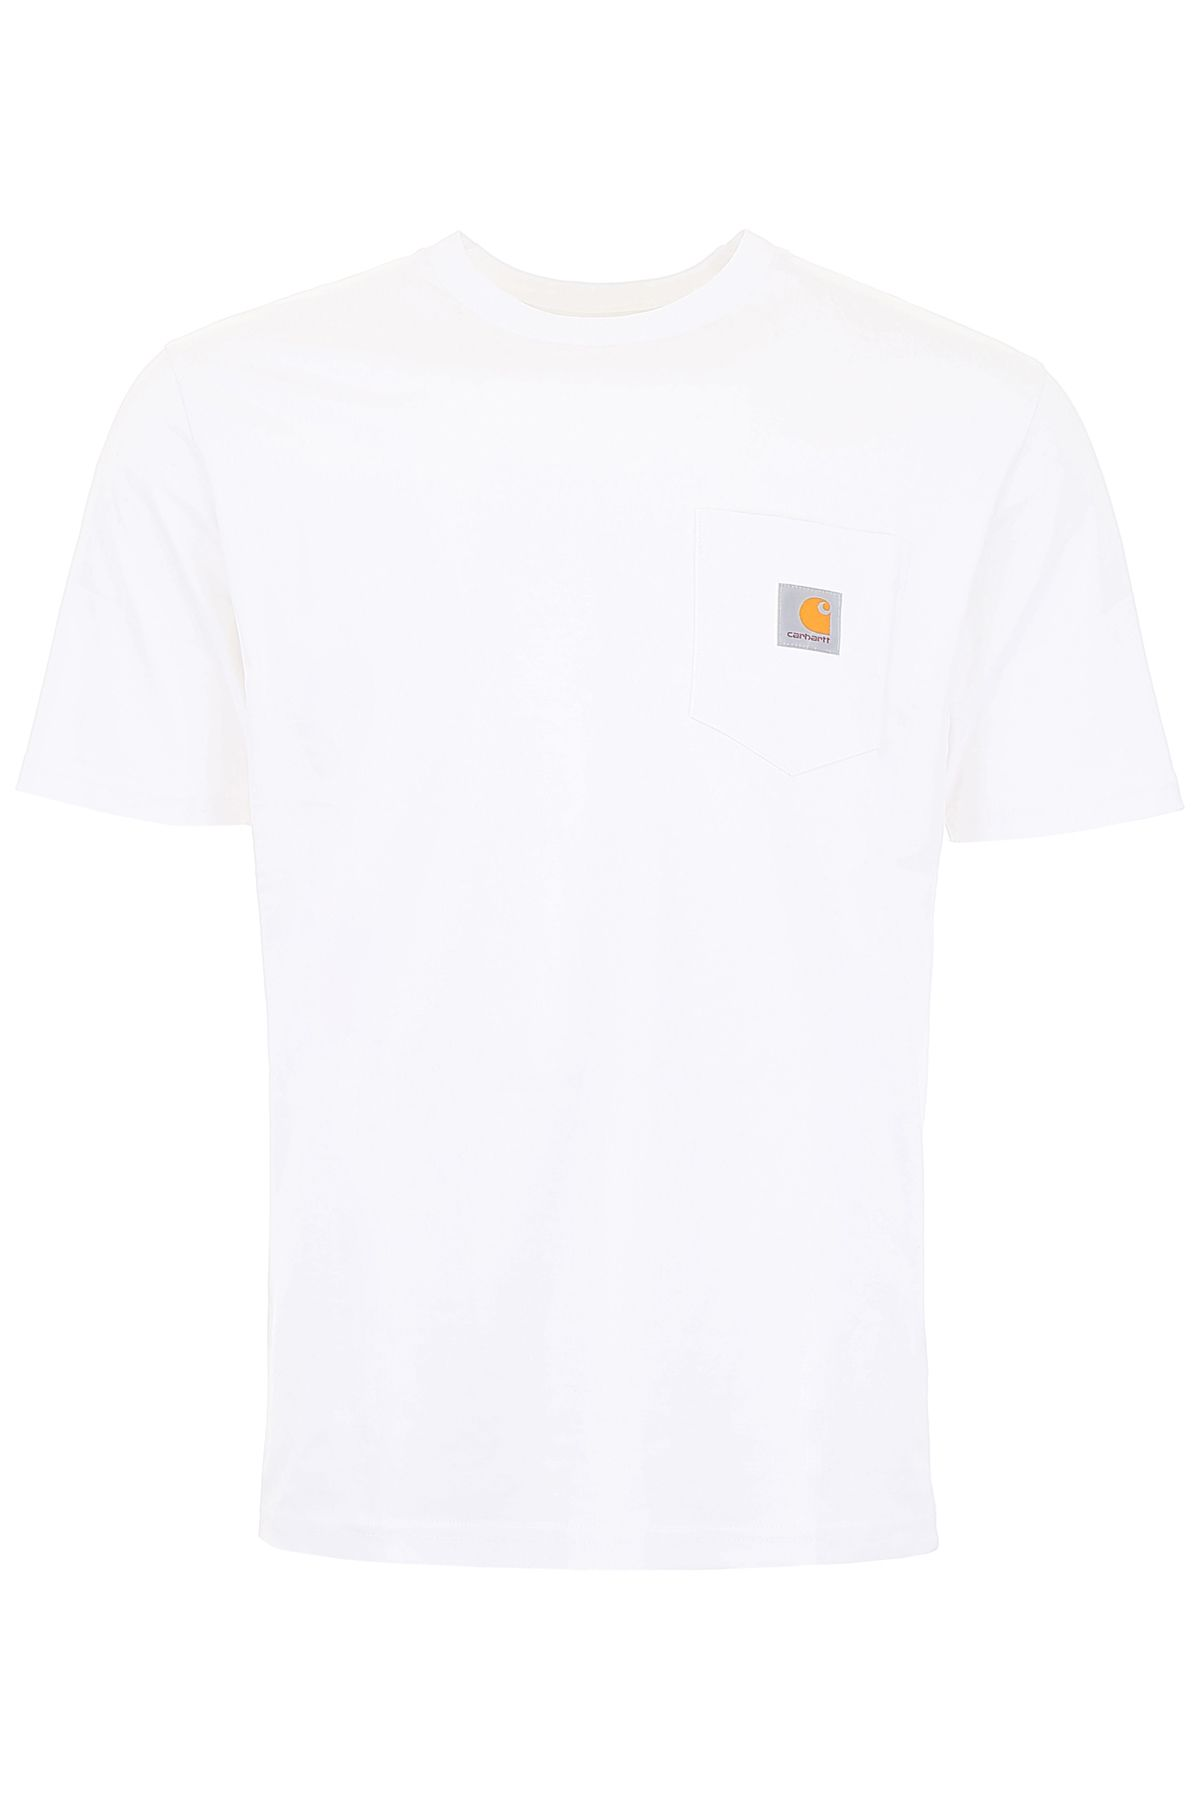 Carhartt Logo Pocket T-shirt